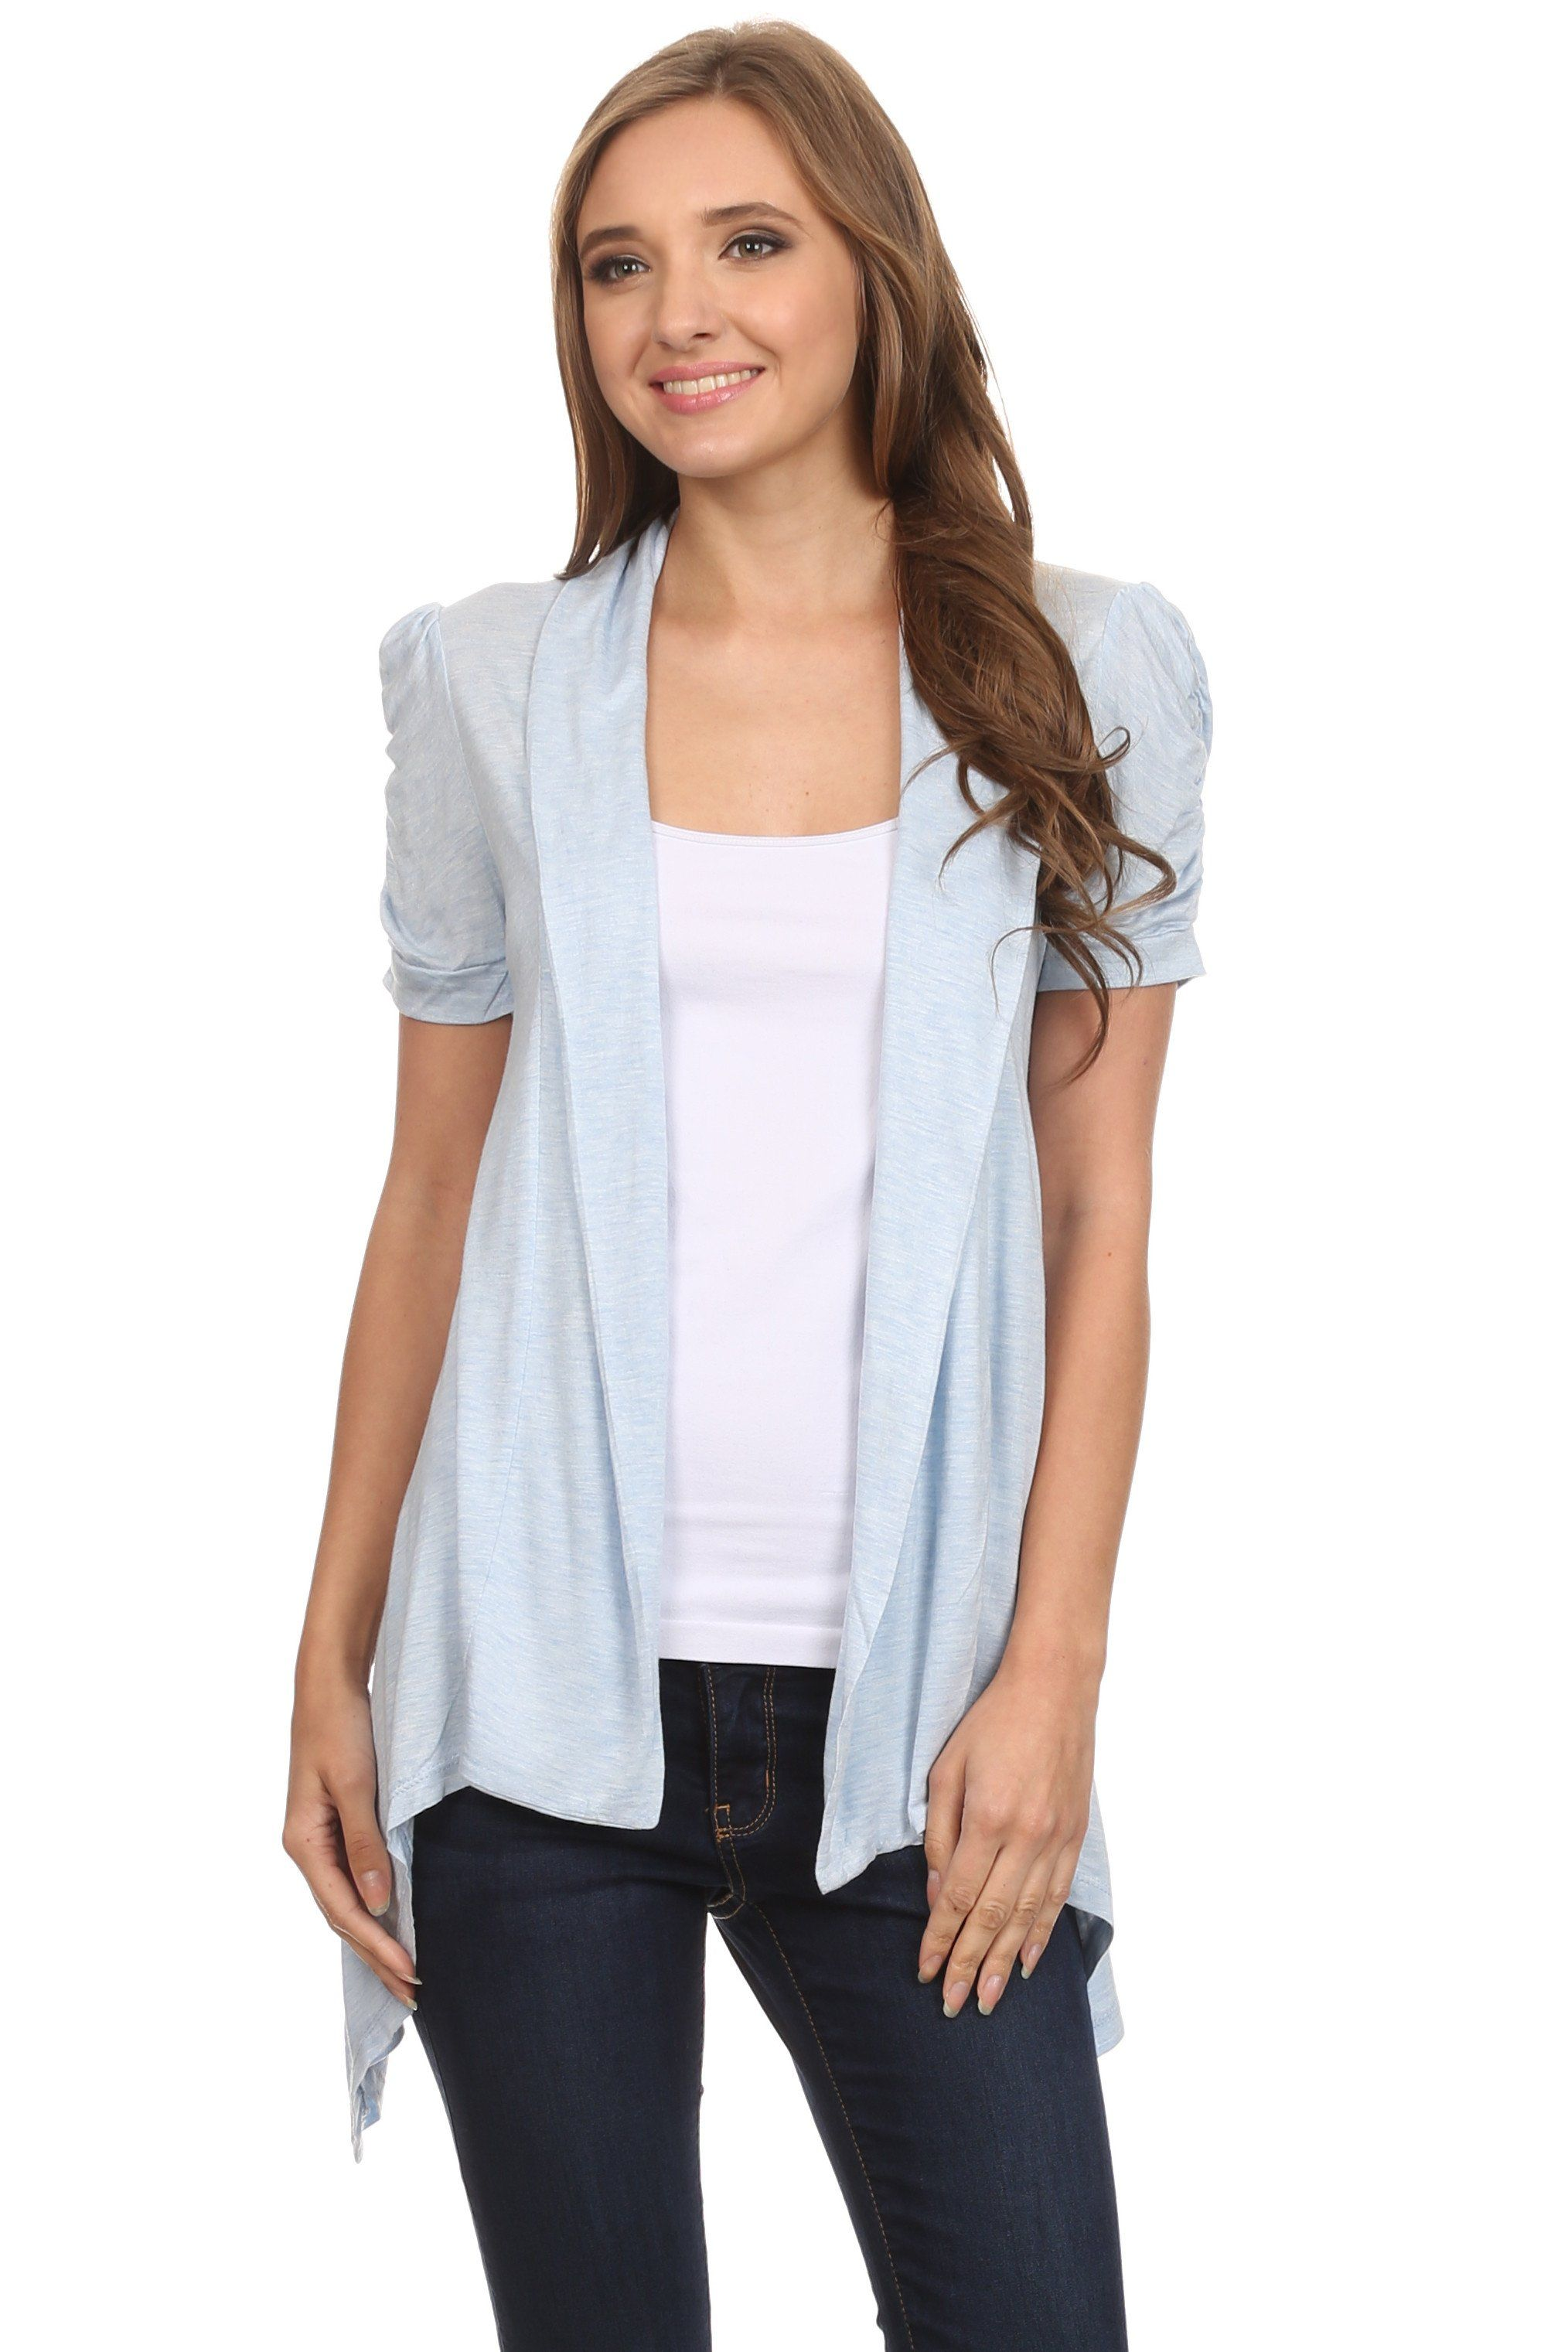 Short Sleeve Cardigan for Women Open Front Draped Flyaway Cardigan ...